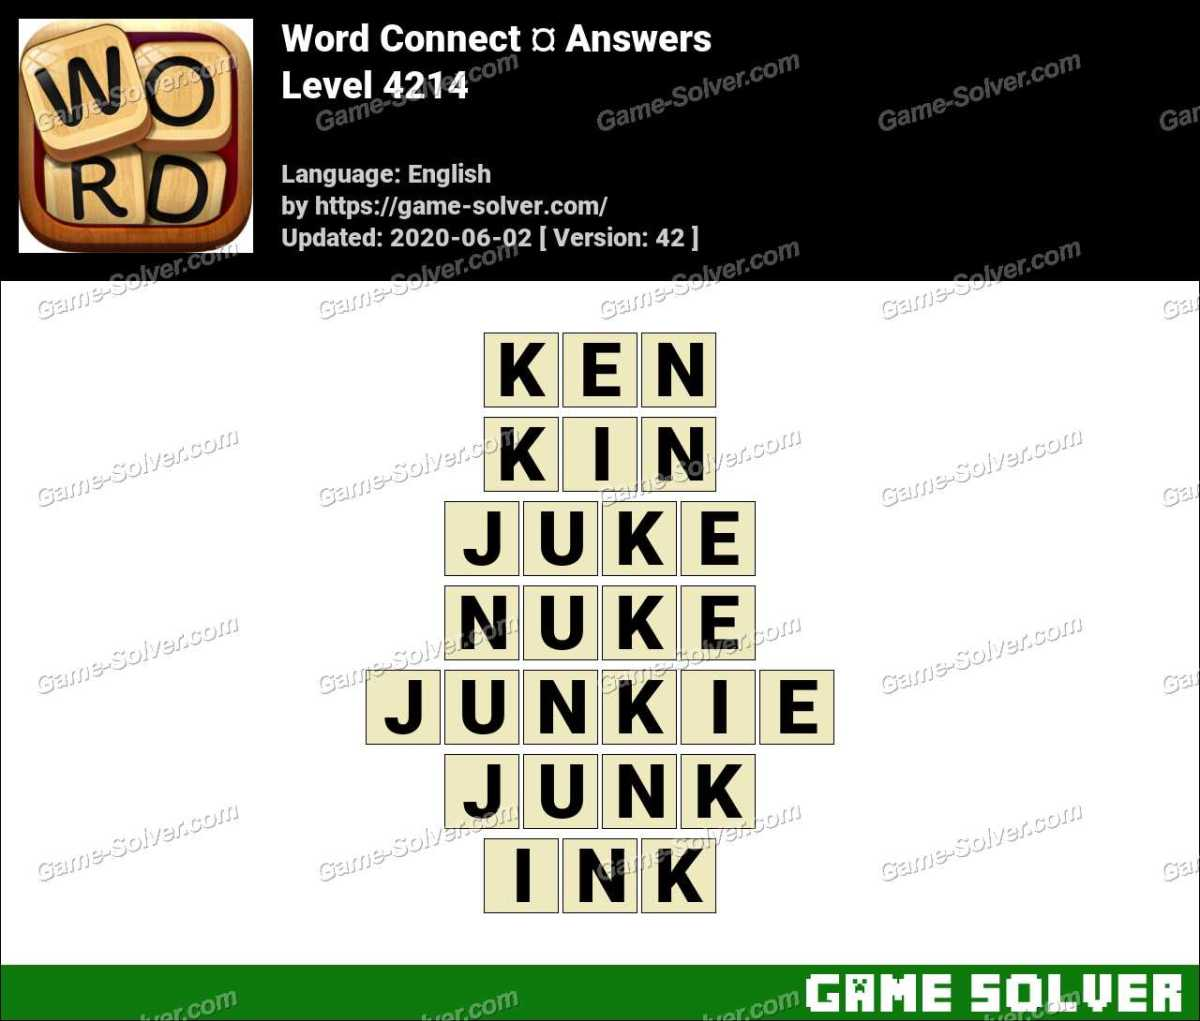 Word Connect Level 4214 Answers